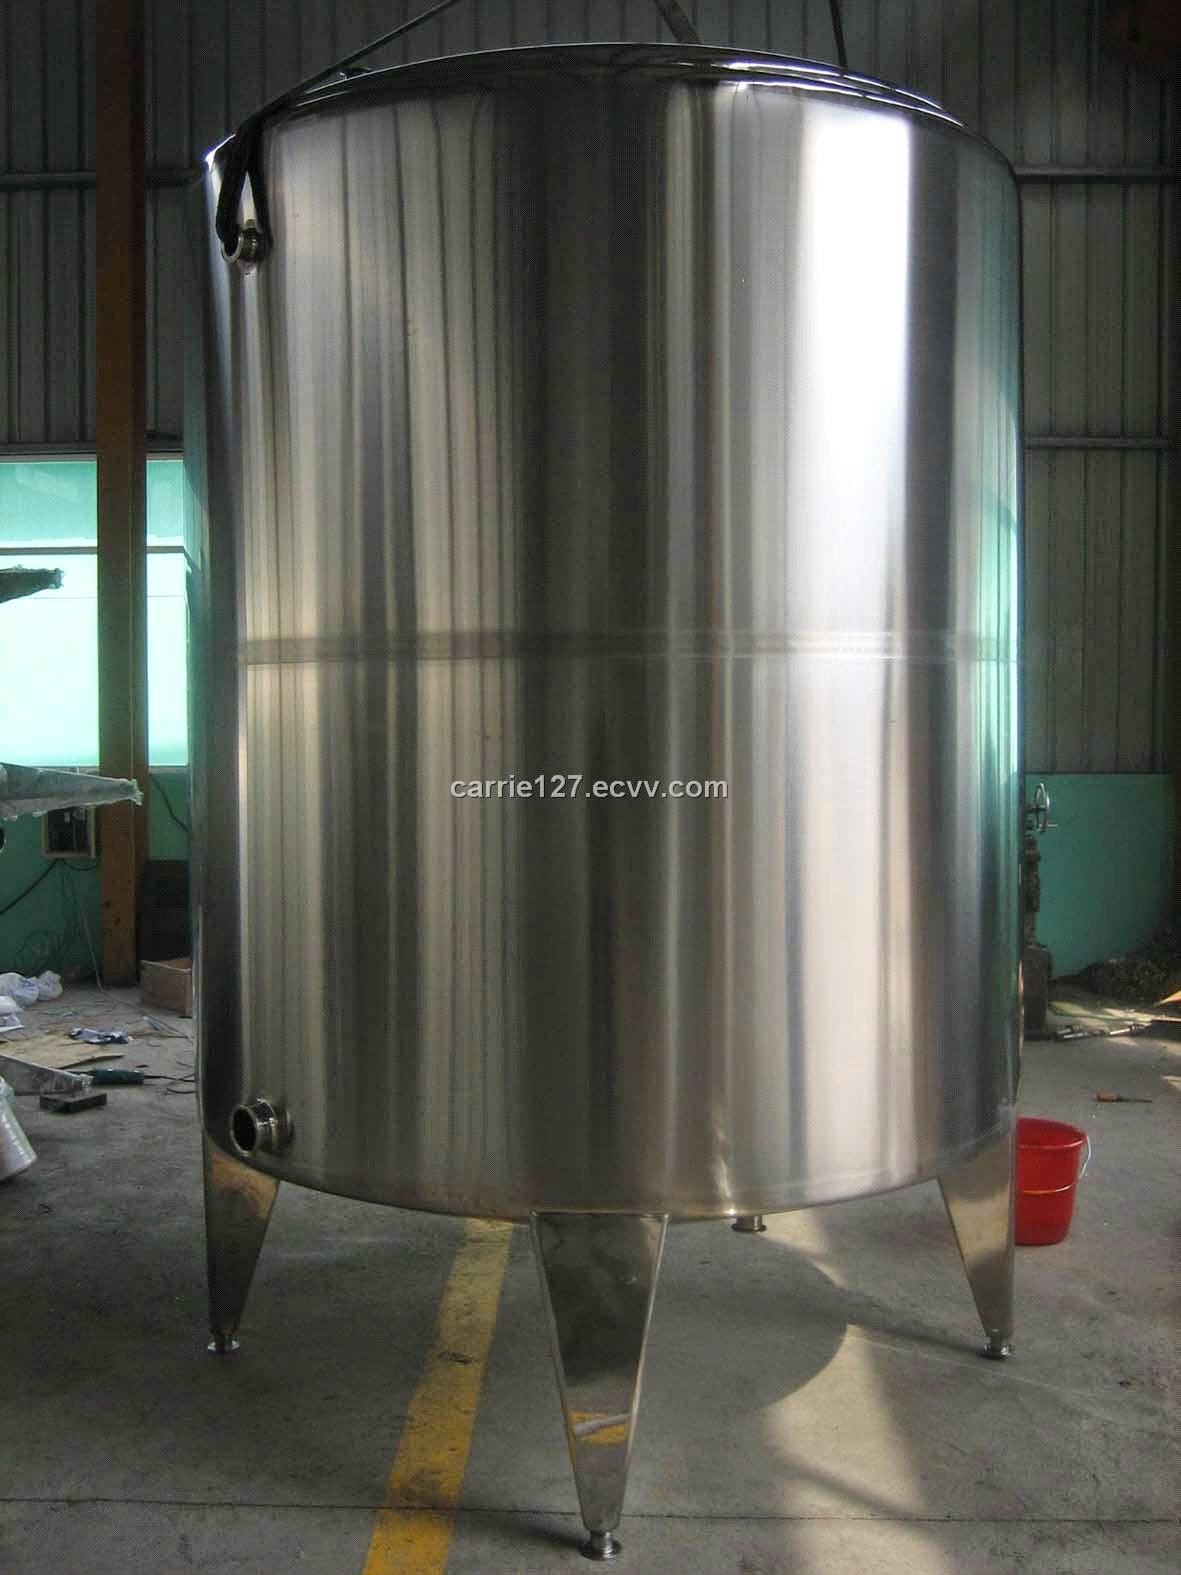 China Manufacturer with main products Stainless Steel Tank, Mixing Vessel, Storage Tank, Tank